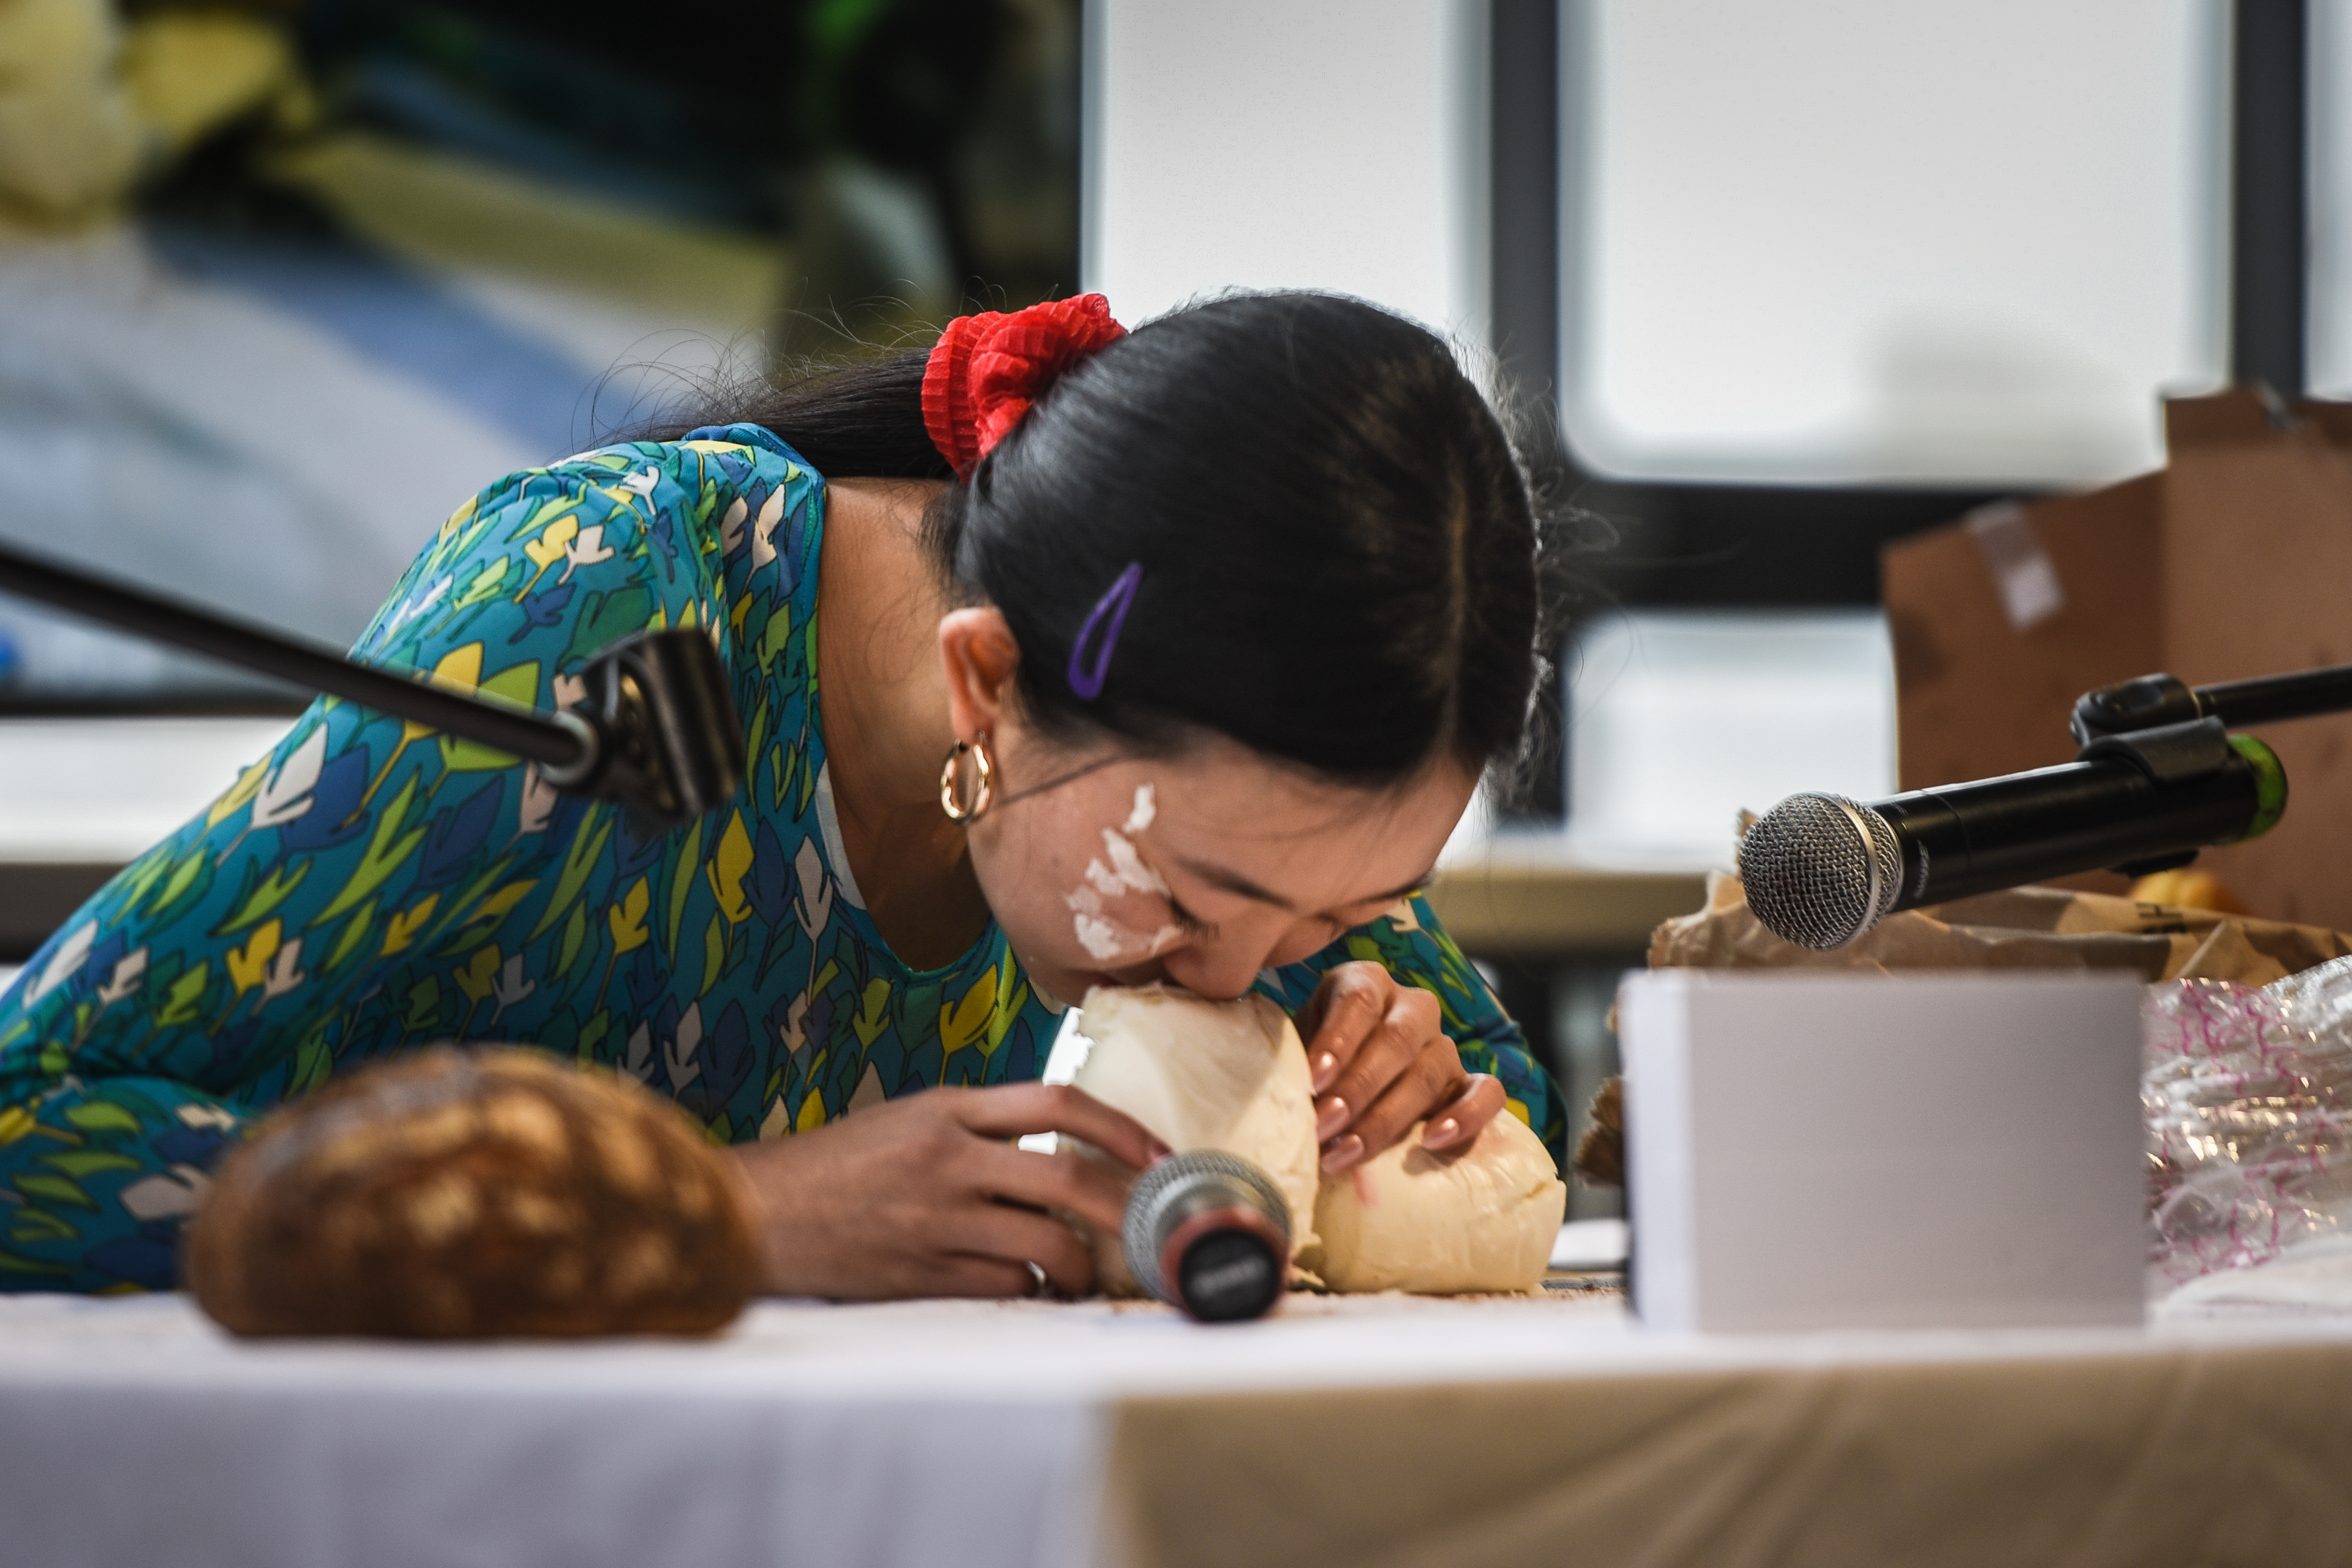 """On October 27, 2018 Philadelphia Contemporary hosted Philadelphia´s festival for autonomous sensory meridian response (ASMR). Pictured here is the woman behind the Instagram account """"Bread Face,"""" she has garnered over 200 thousand followers by posting videos of her smashing her face into loafs of bread."""